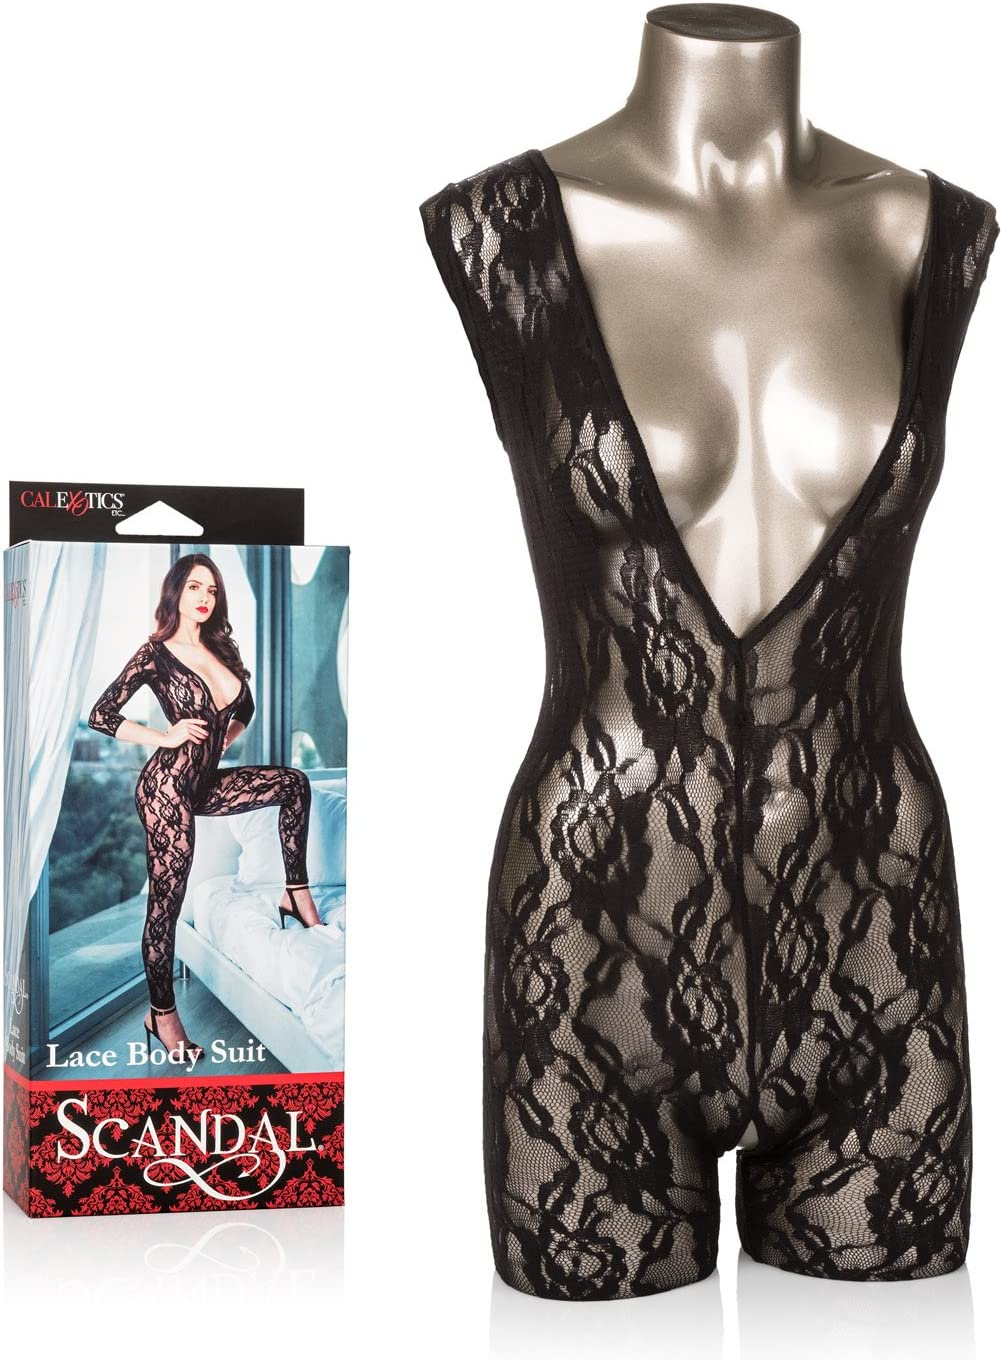 CalExotics Scandal Body Suit – Erotic BDSM Fetish Outfit for Couples – Fetish Role Playing Jumper - Black